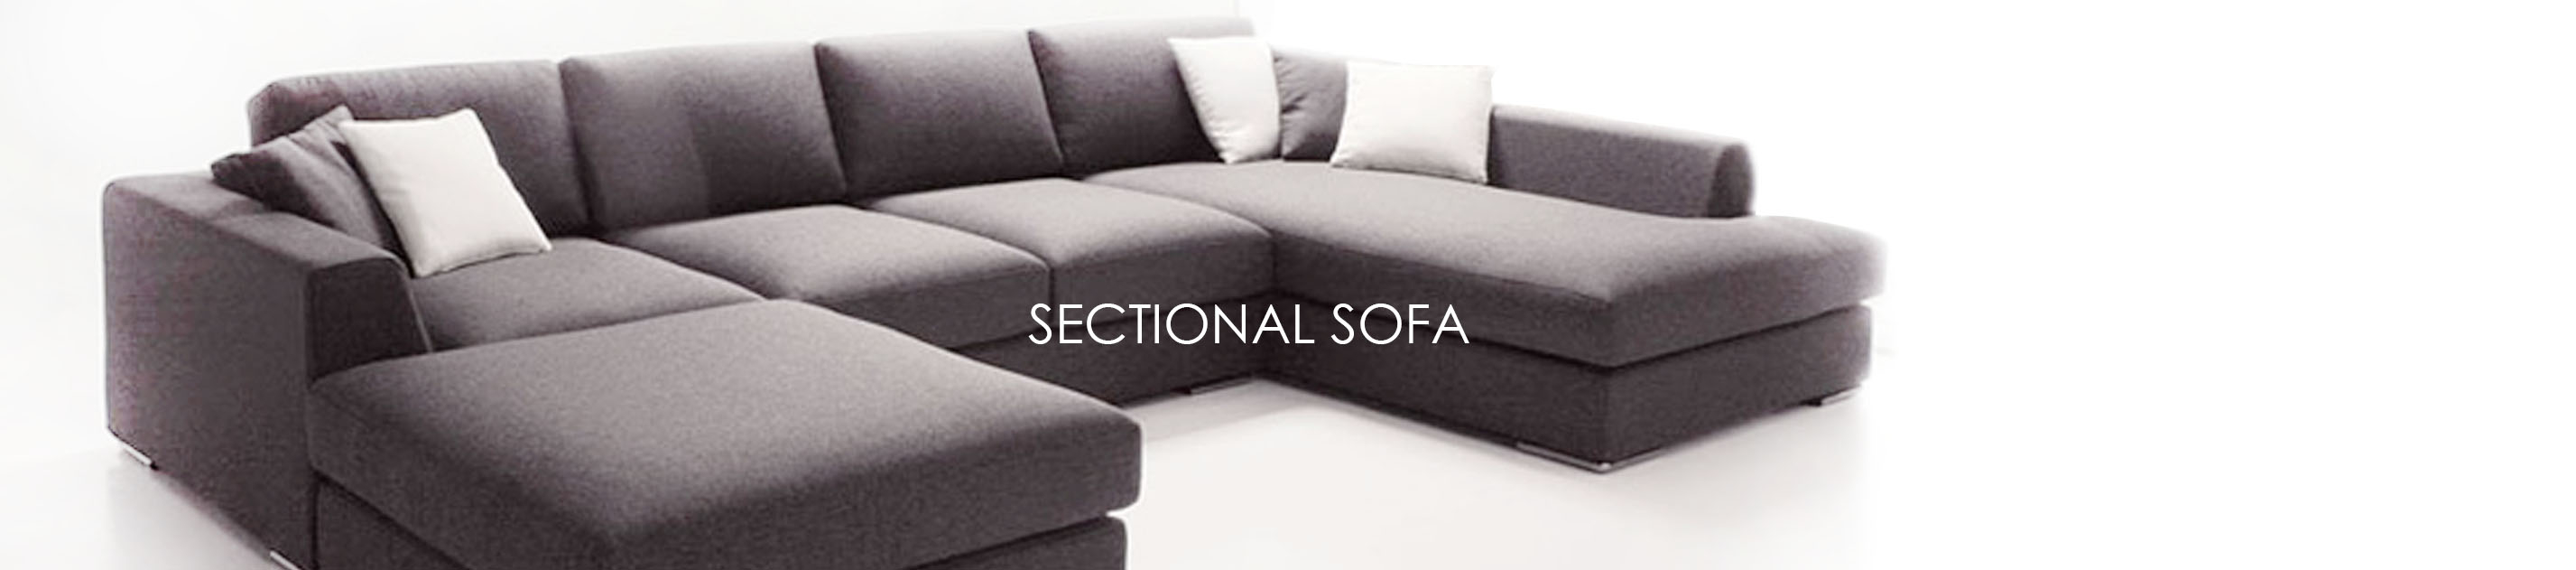 Stockroom brings a significant collection of L shape Sofas & Sectional Sofas for customers in Hong Kong